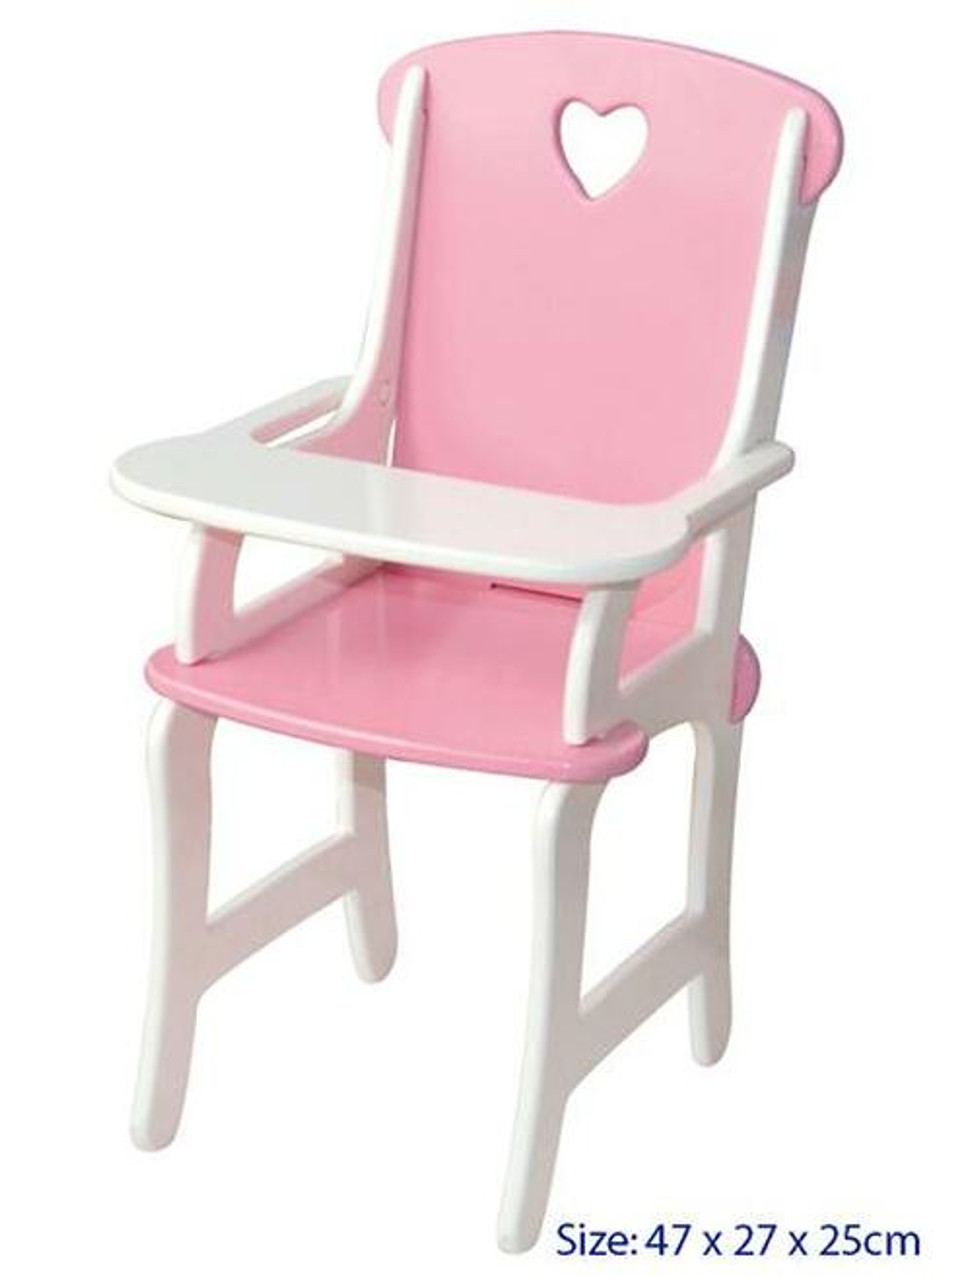 Fun Factory Wooden Doll High Chair at Baby Barn Discounts Feeding time is made fun and easy with this delightful pink doll high chair from Fun Factory.